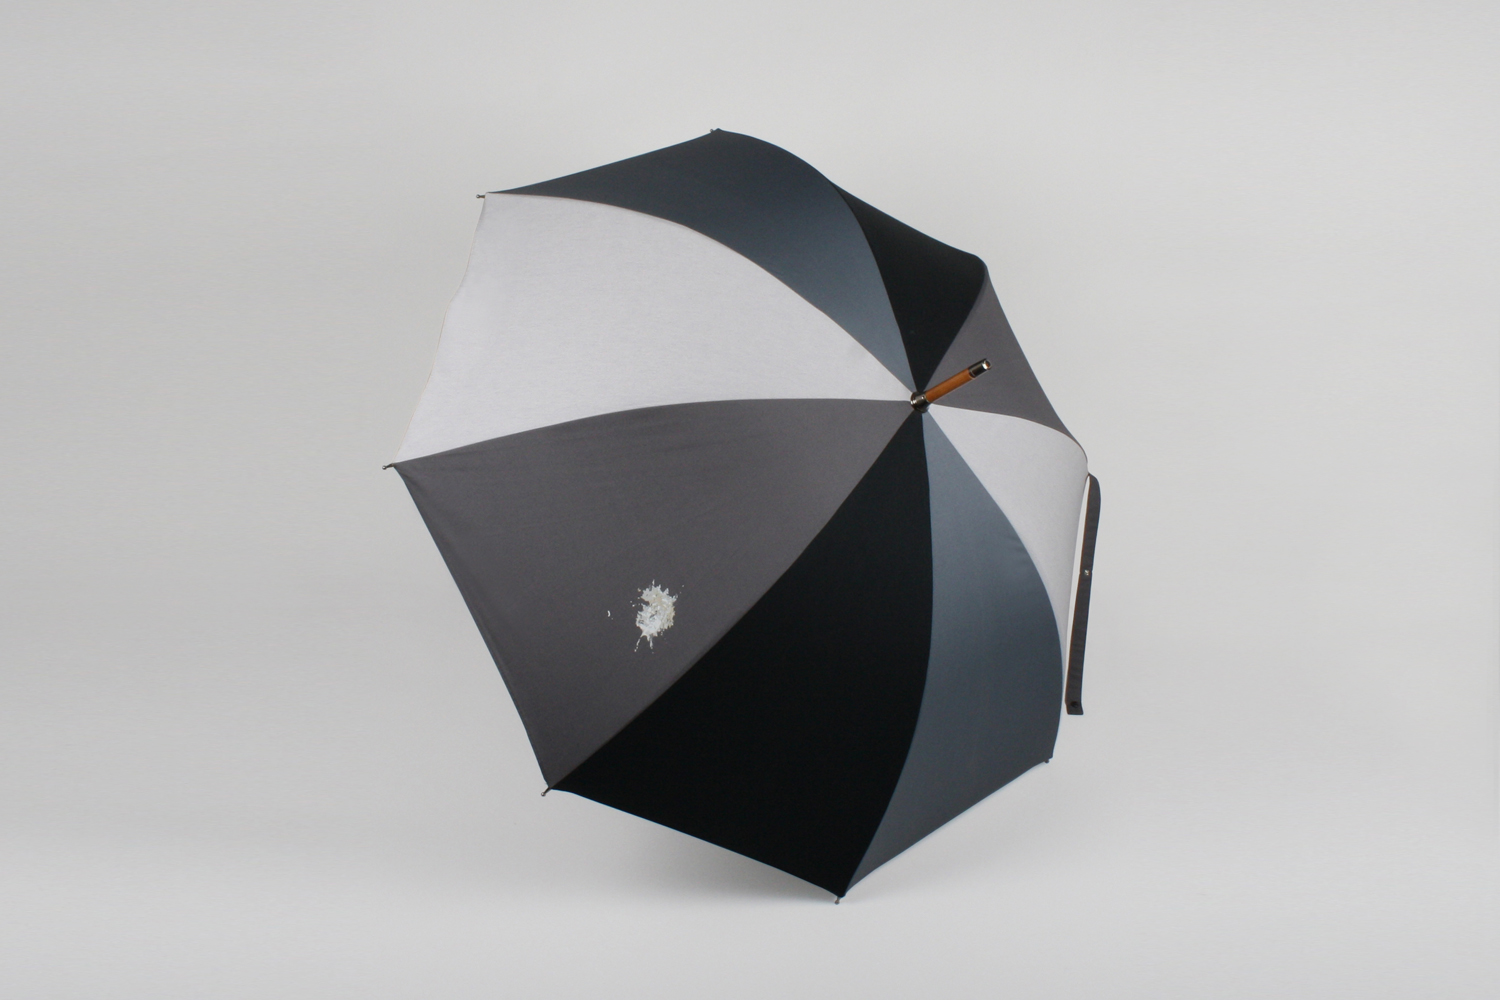 London Undercover x Staple Design Umbrella